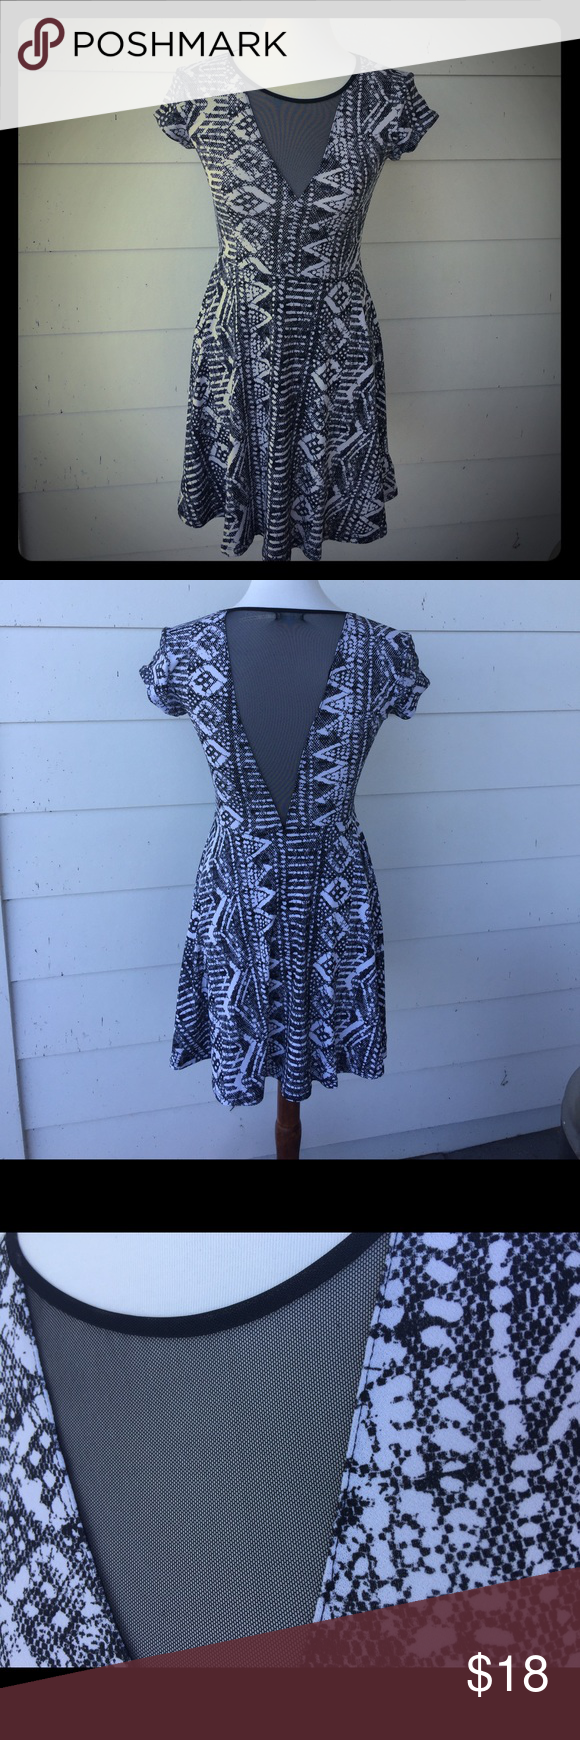 Flirty, Fun Kimchi Blue Dress Adorable Kimchi Blue Small dress. Fun black & white pattern w Black see thru Fabric in front & back to add flair! Stretch material & very comfortable. Dress up w Heels or casual w flats! EXCELLENT Condition, smoke free home Kimchi Blue Dresses Mini